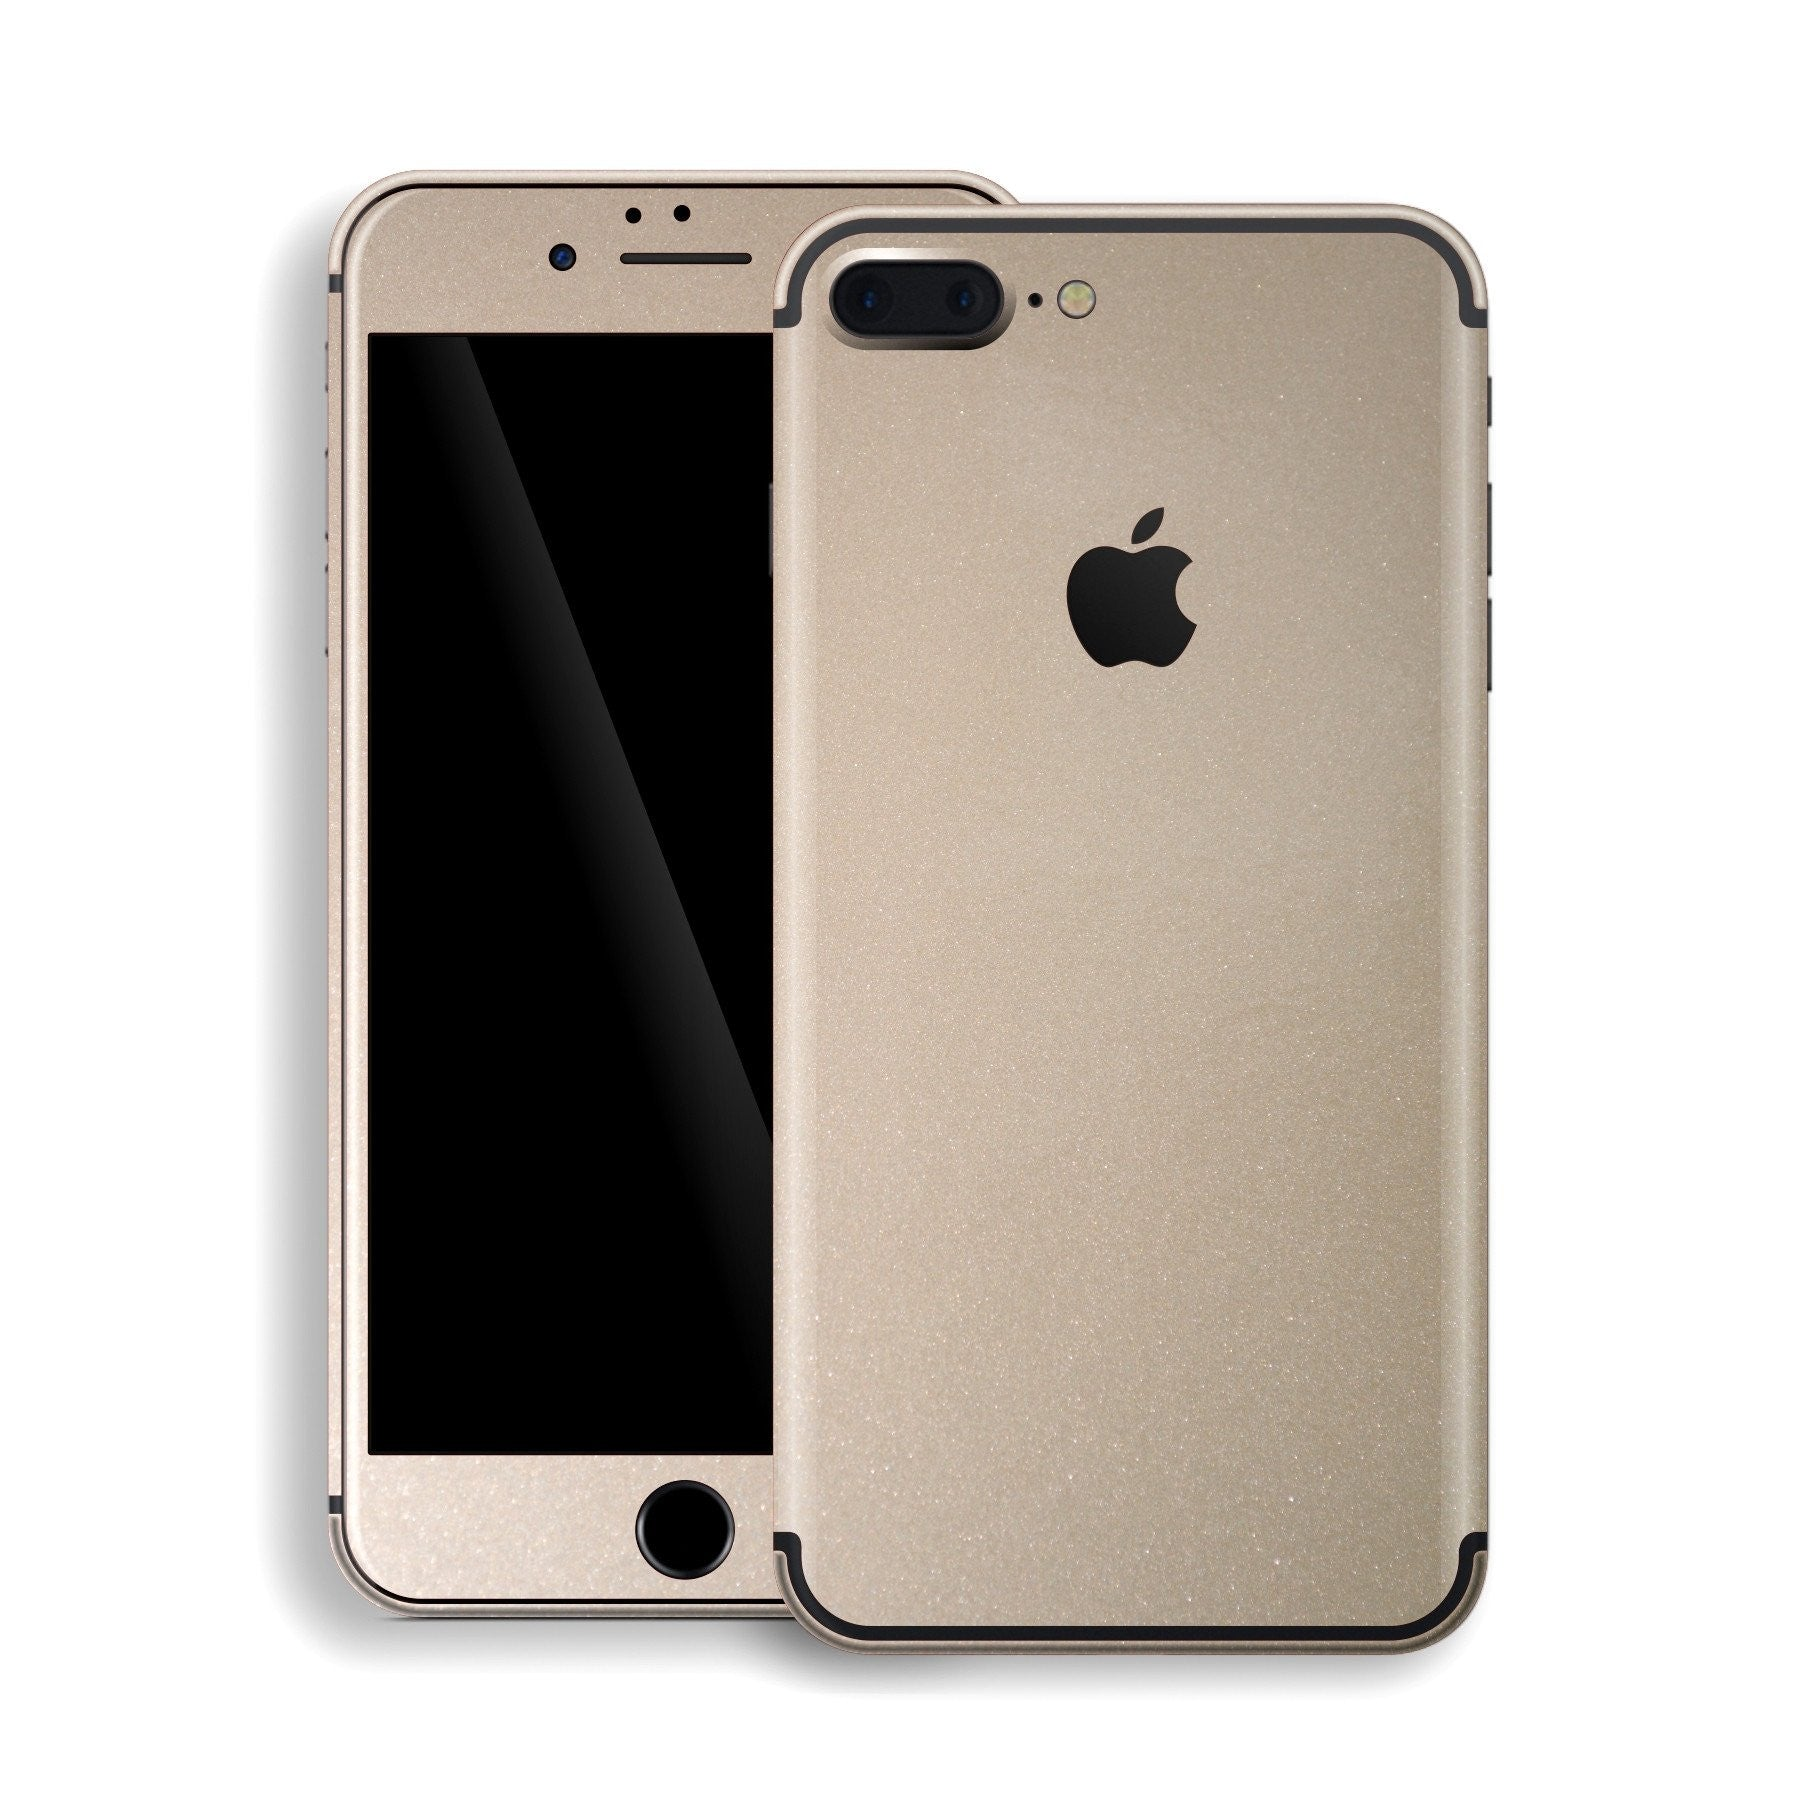 iphone 7 plus gold at&t iphone plus champagne gold glossy metallic skin decal wrap protector cover plus gold metallic decal easyskinz